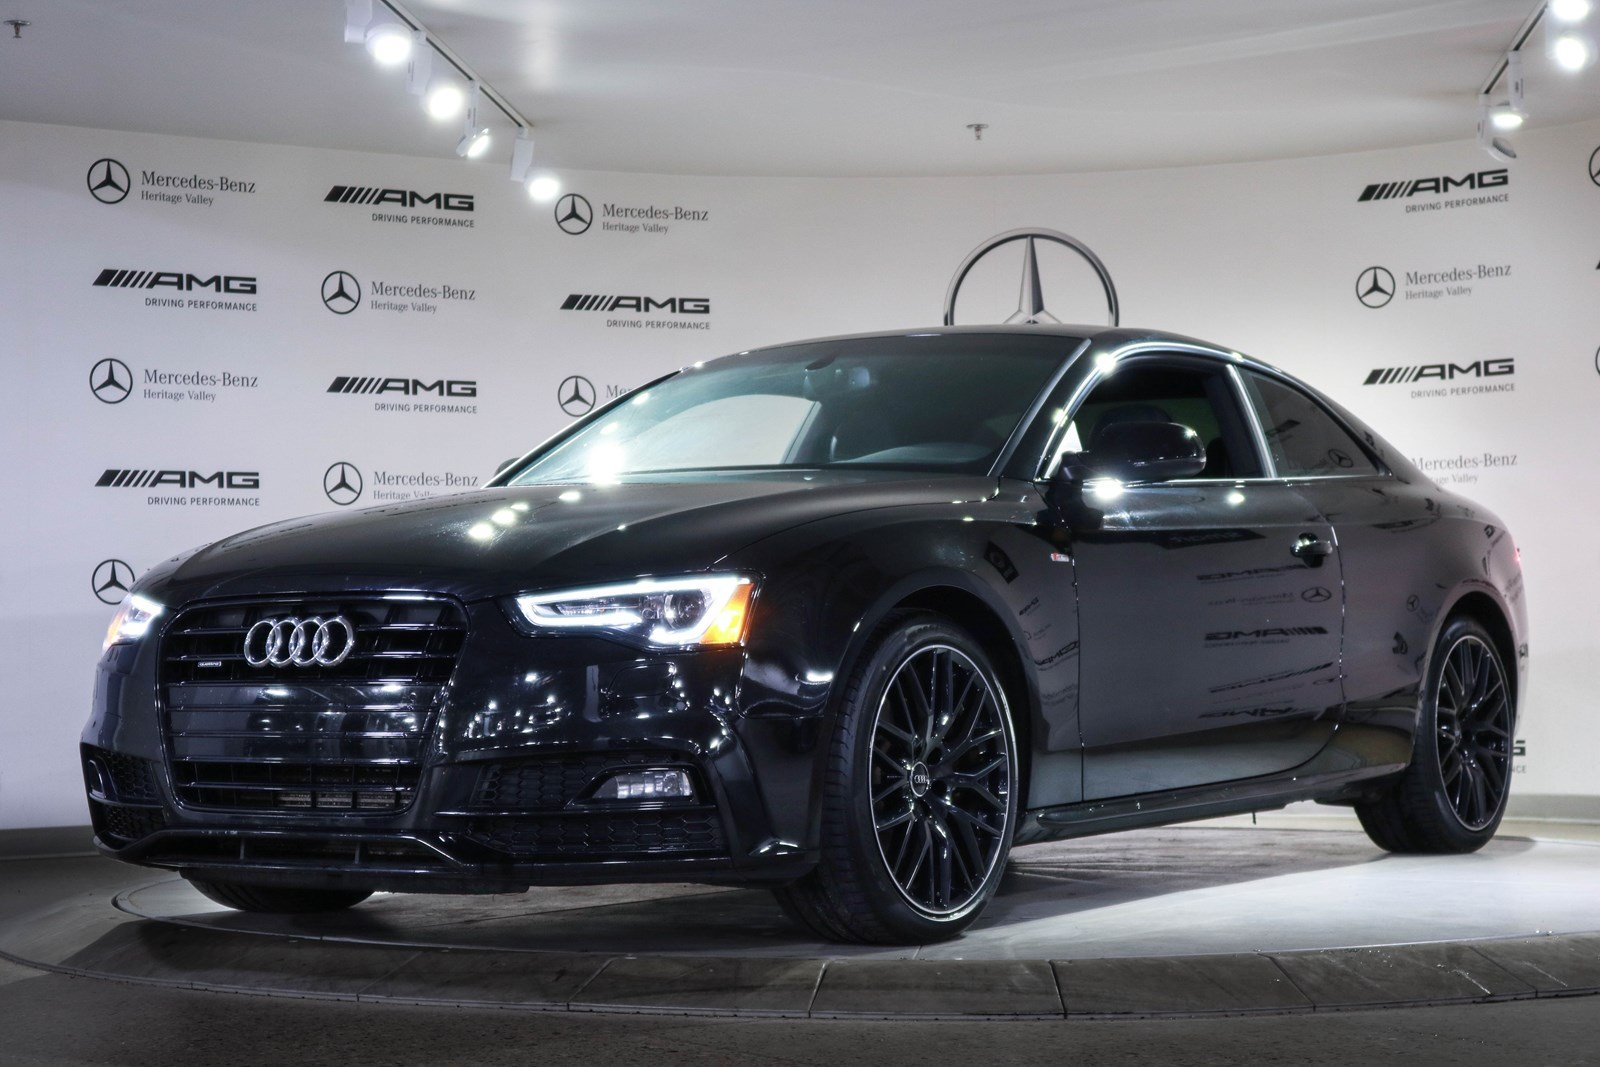 Pre-Owned 2016 Audi A5 Technik plus